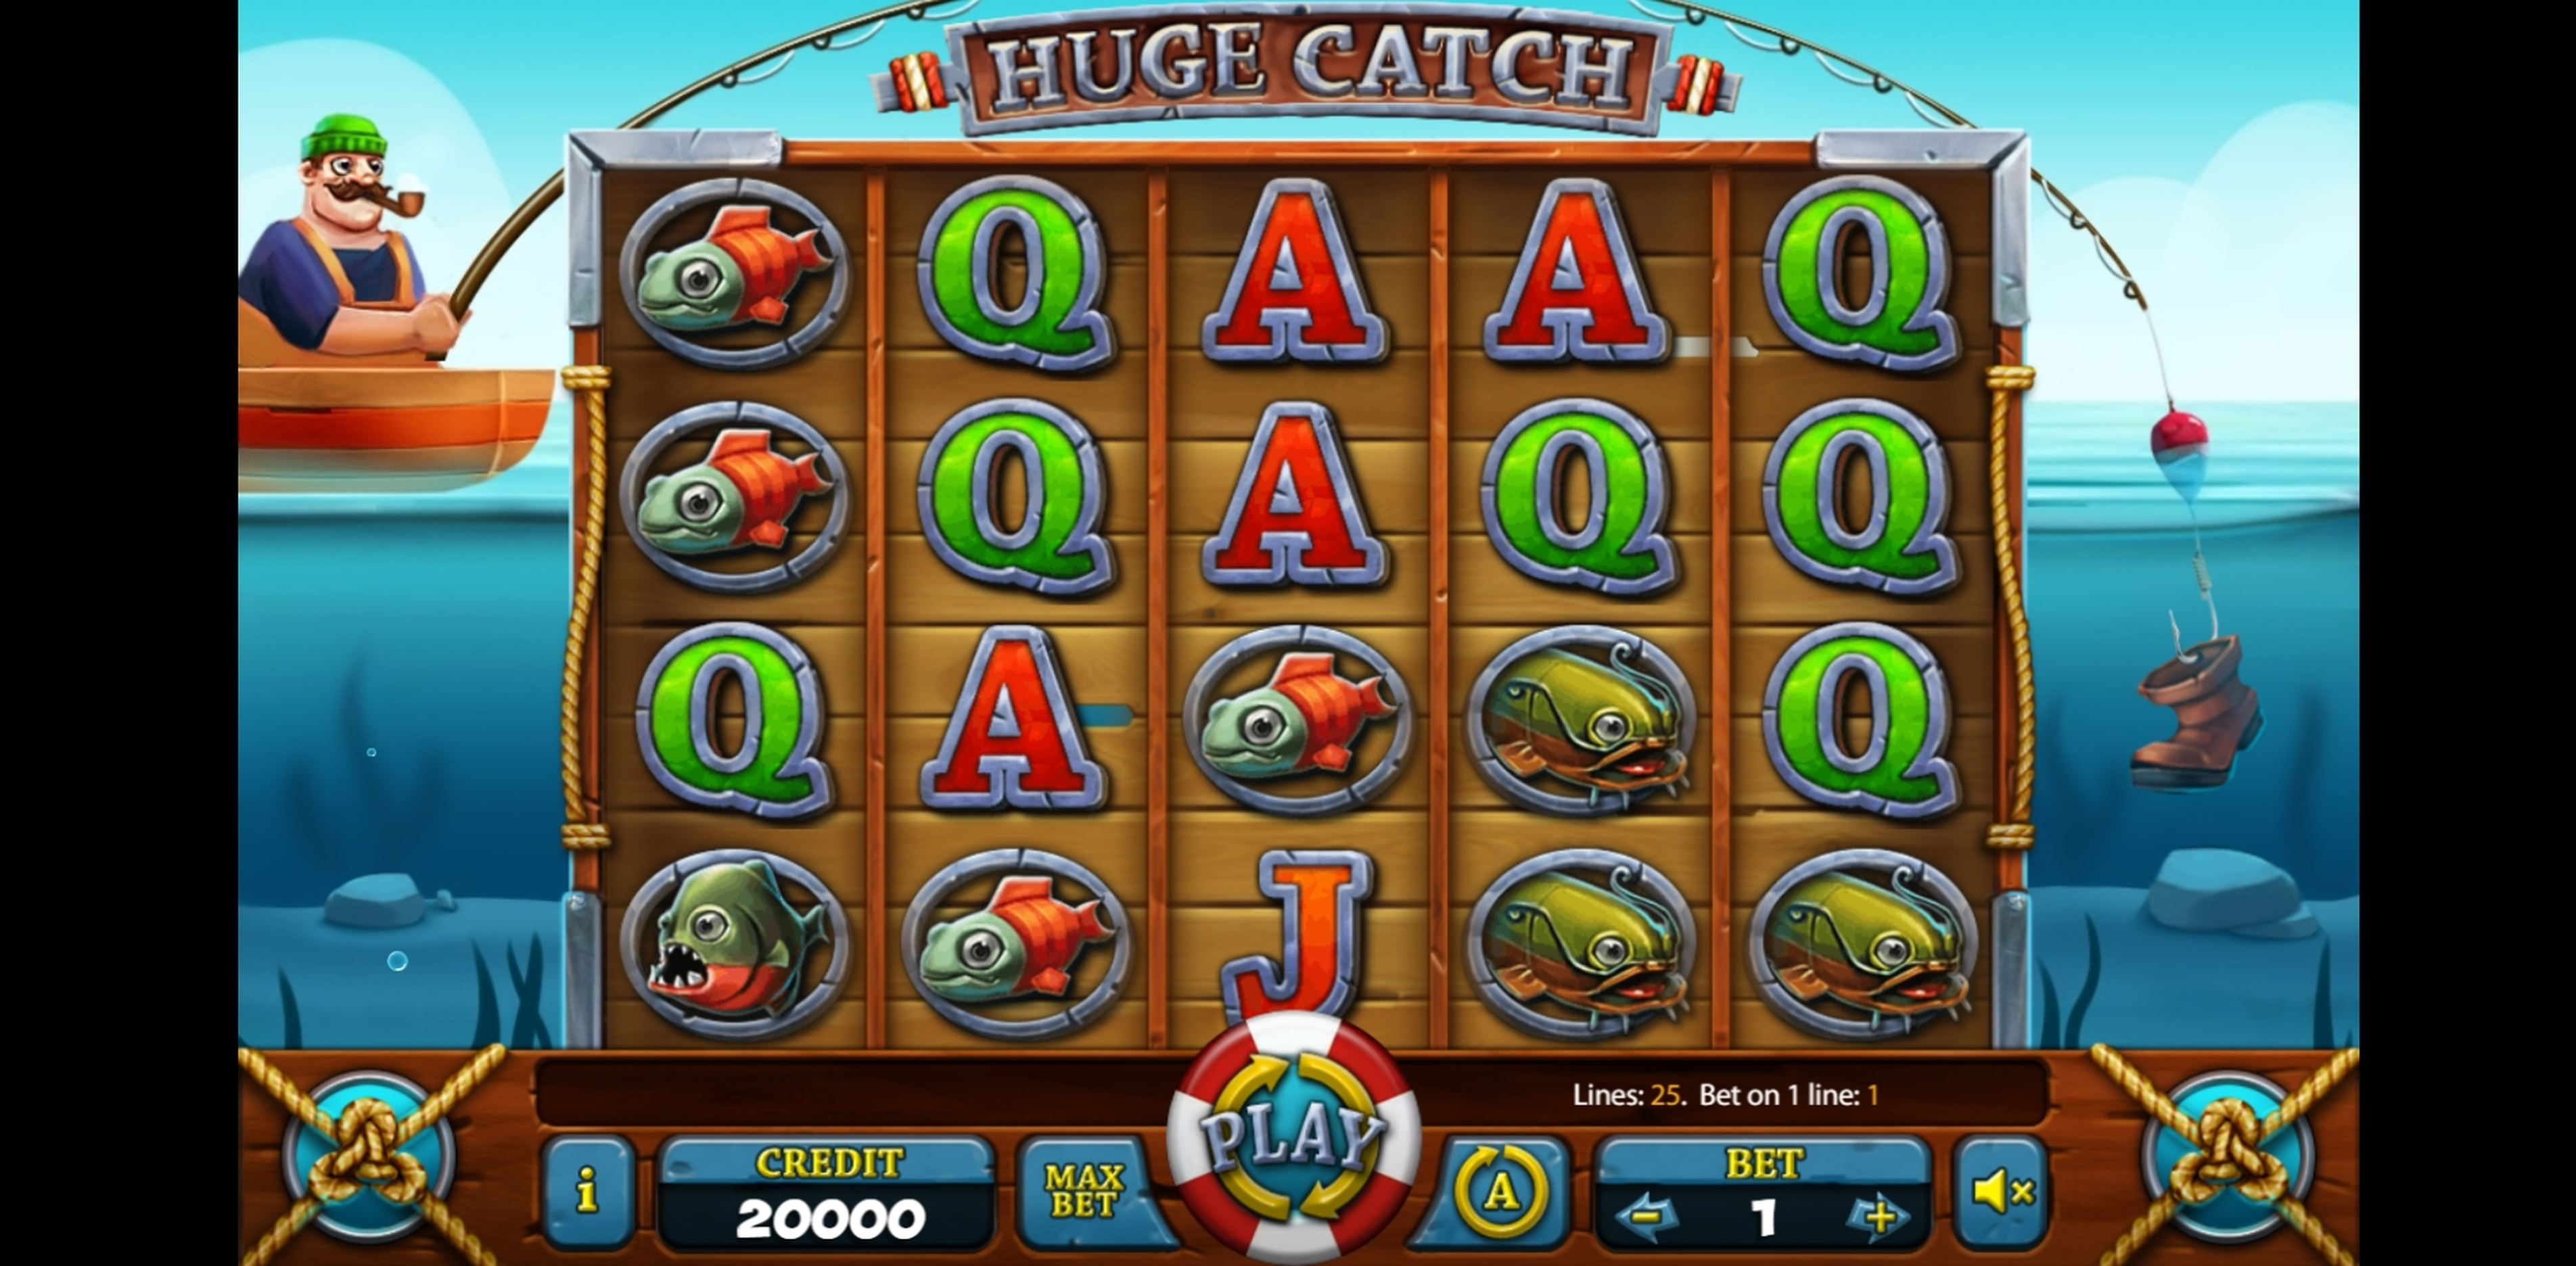 Reels in Huge Catch Slot Game by X Card